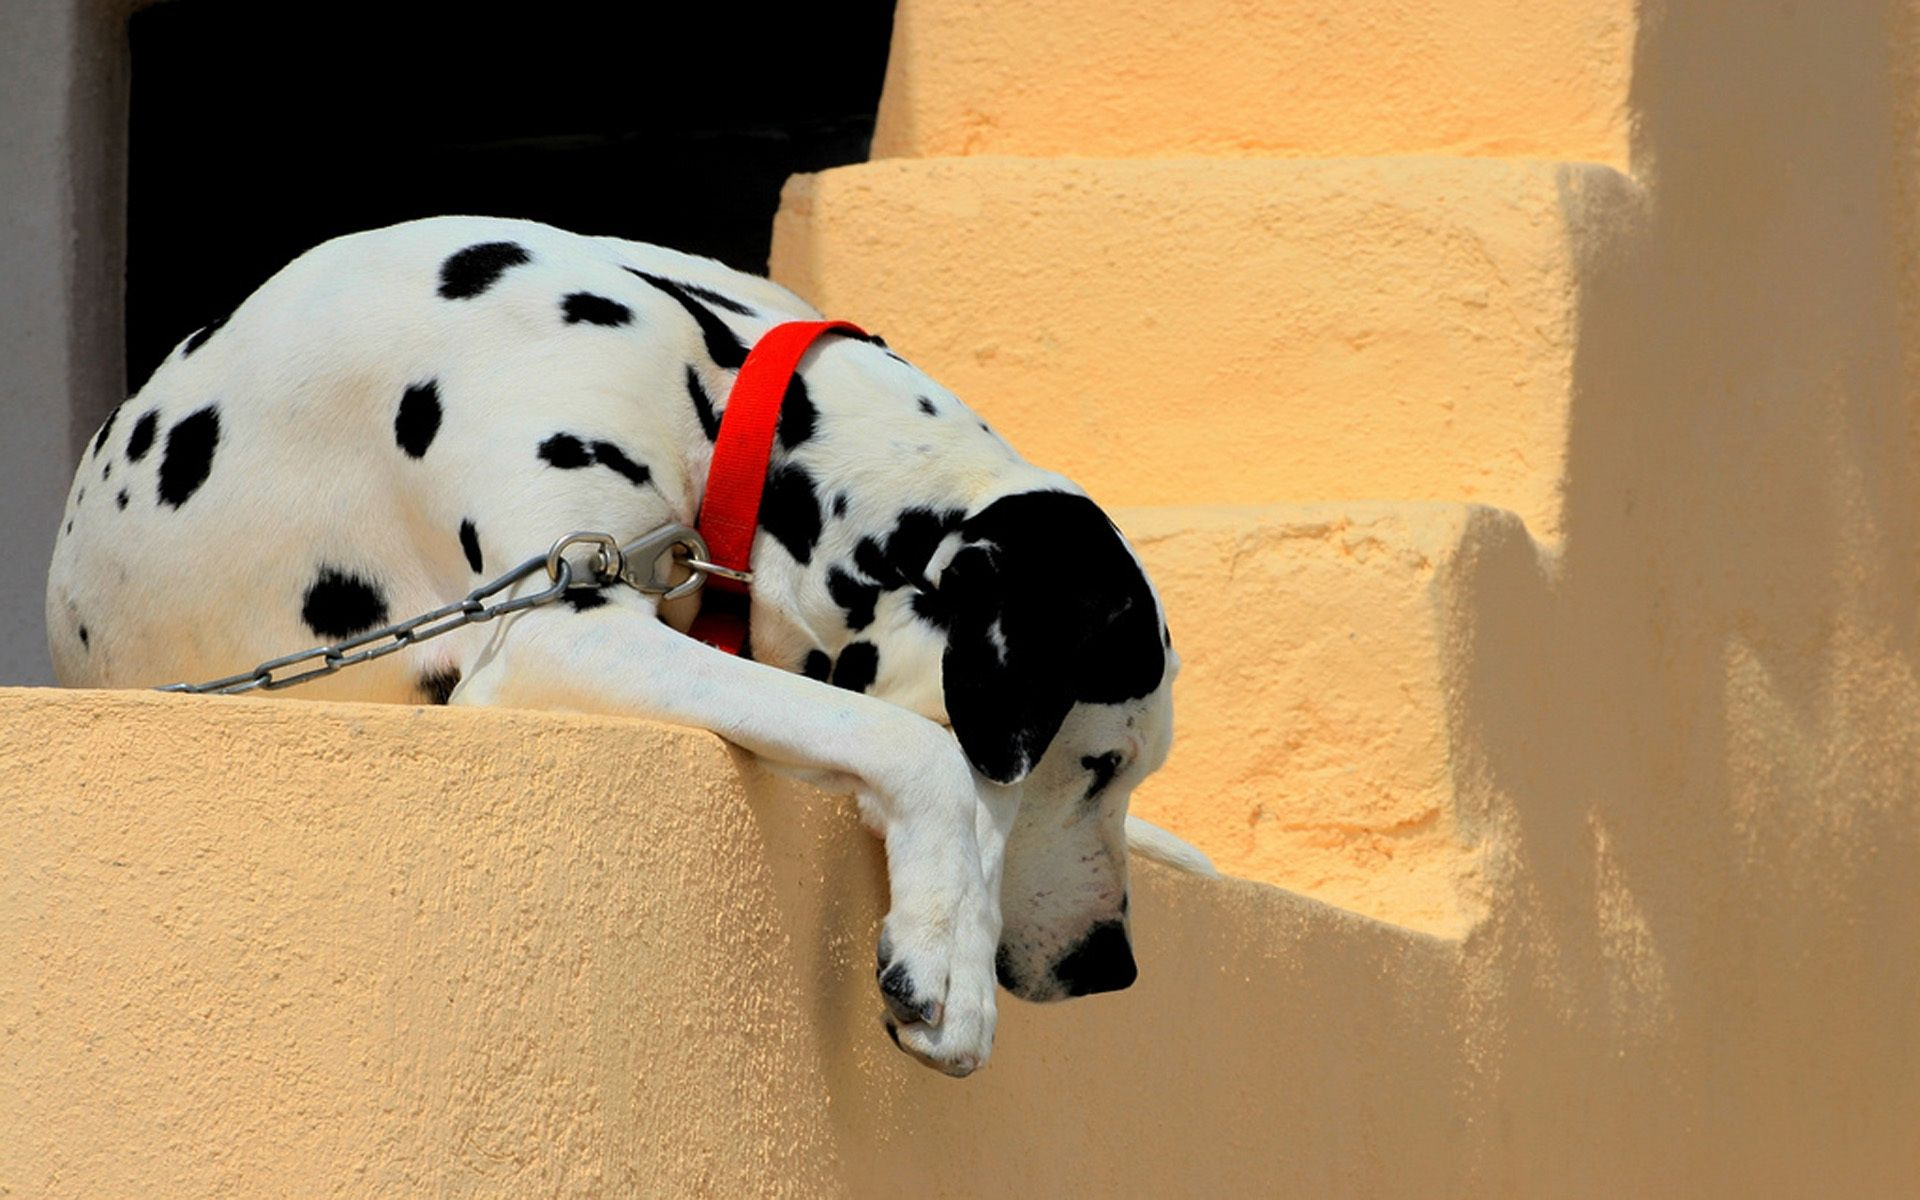 Dalmatian, dog, watch, wallpapers , Pc backgrounds, free photos